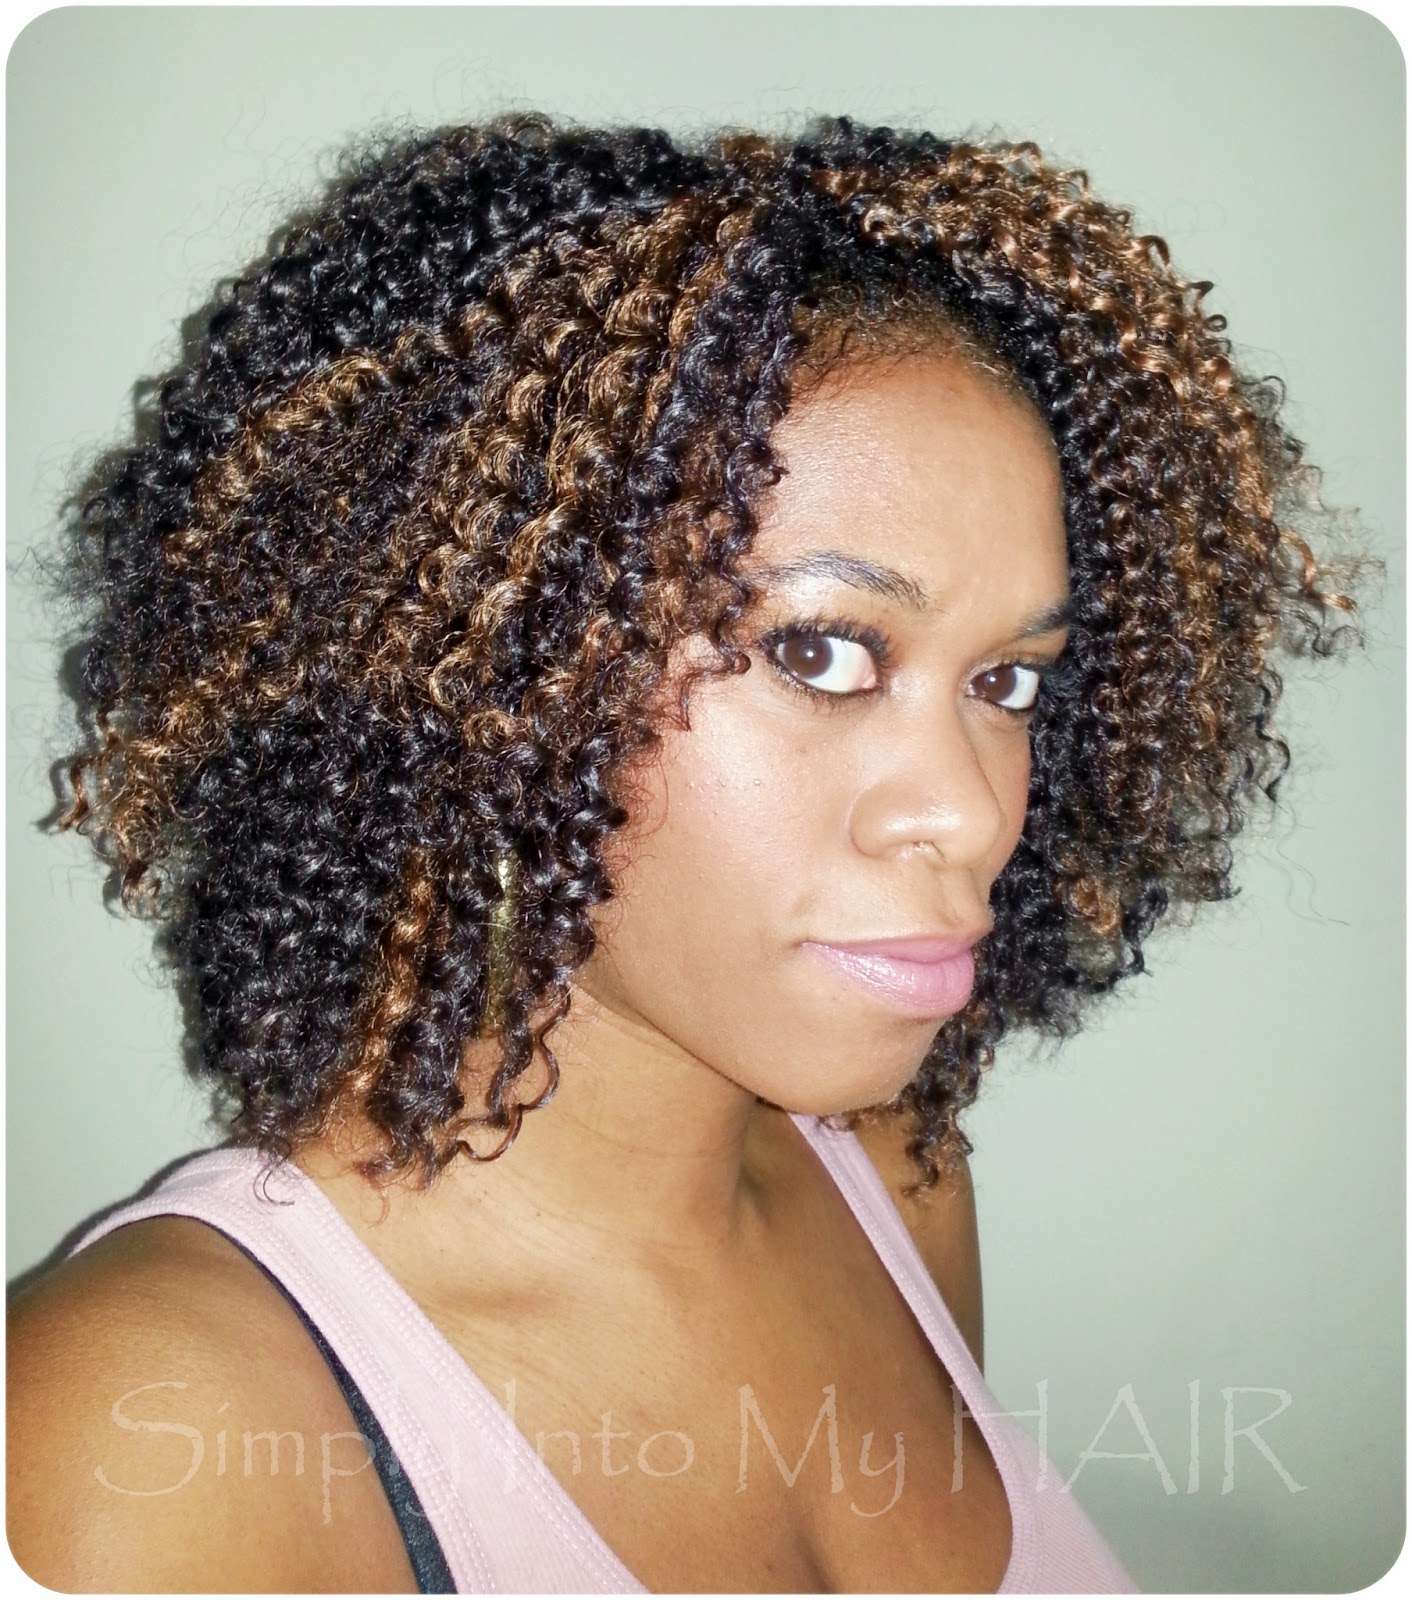 Crochet Hair : Crochet Braids #7 Simply Into My HAIR